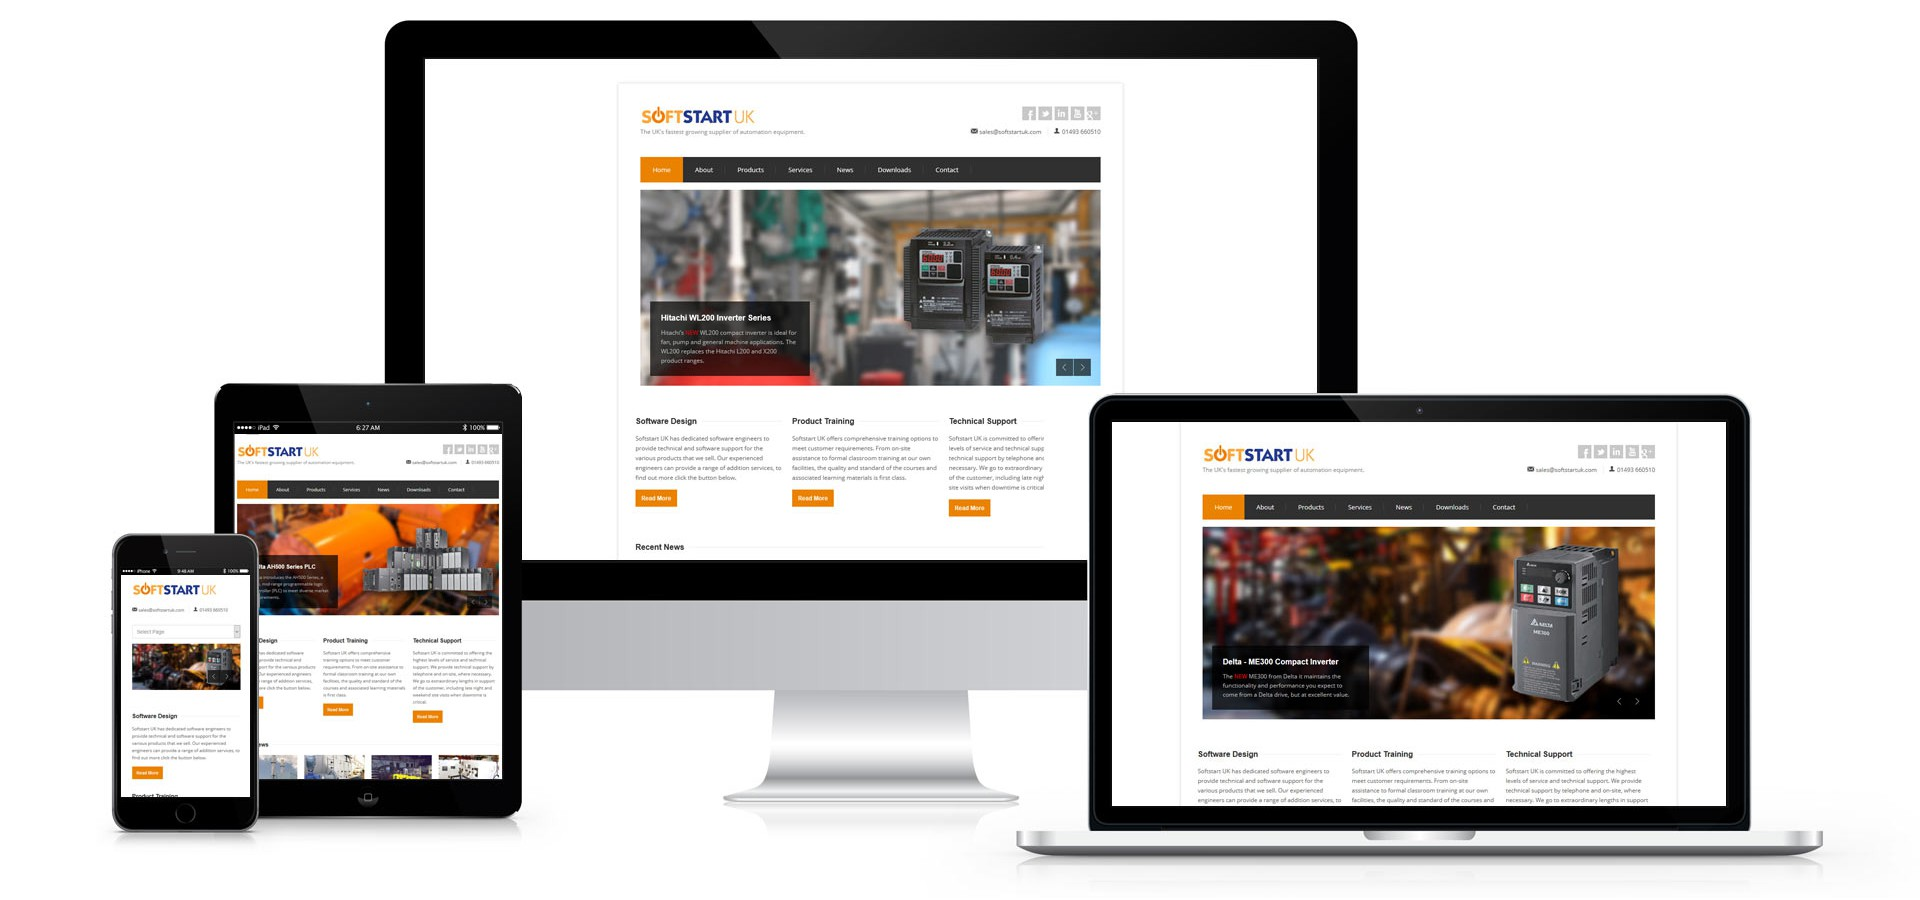 Softstart UK - Responsive Website Design